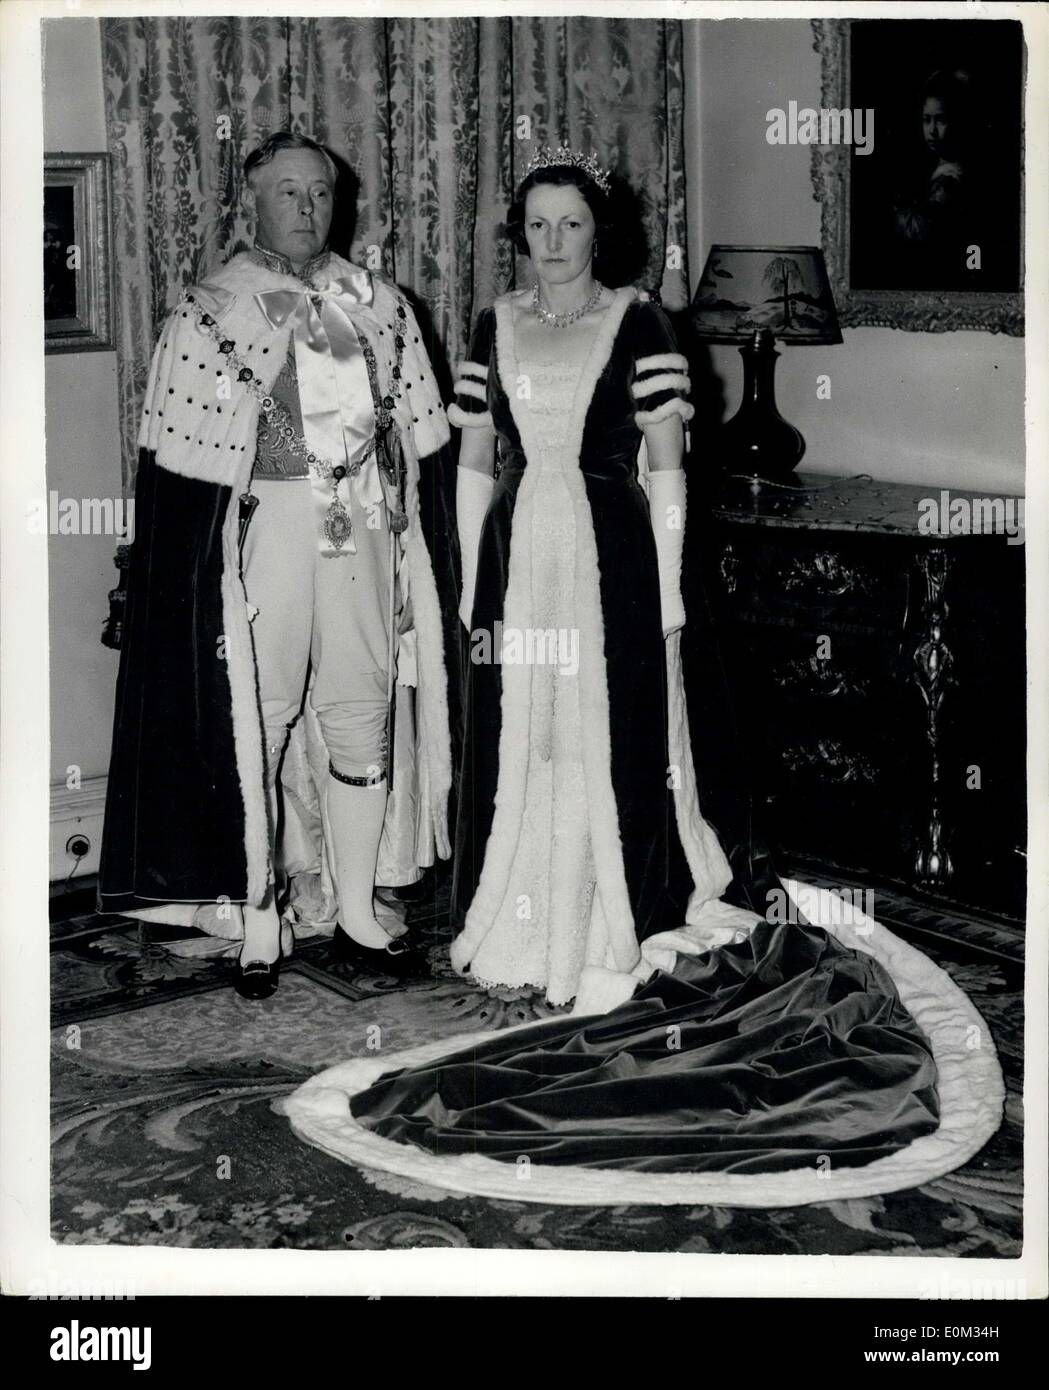 May 27, 1953 - Duke And Duchess Of Norfolk In Coronation Robes: The man with the biggest job in Britain today, the master planner behind the Coronation preparations, the Earl Marshal, The Duke Of Norfolk, photographed with the Duchess Of Norfolk wearing their Coronation Day robes last night. - Stock Image